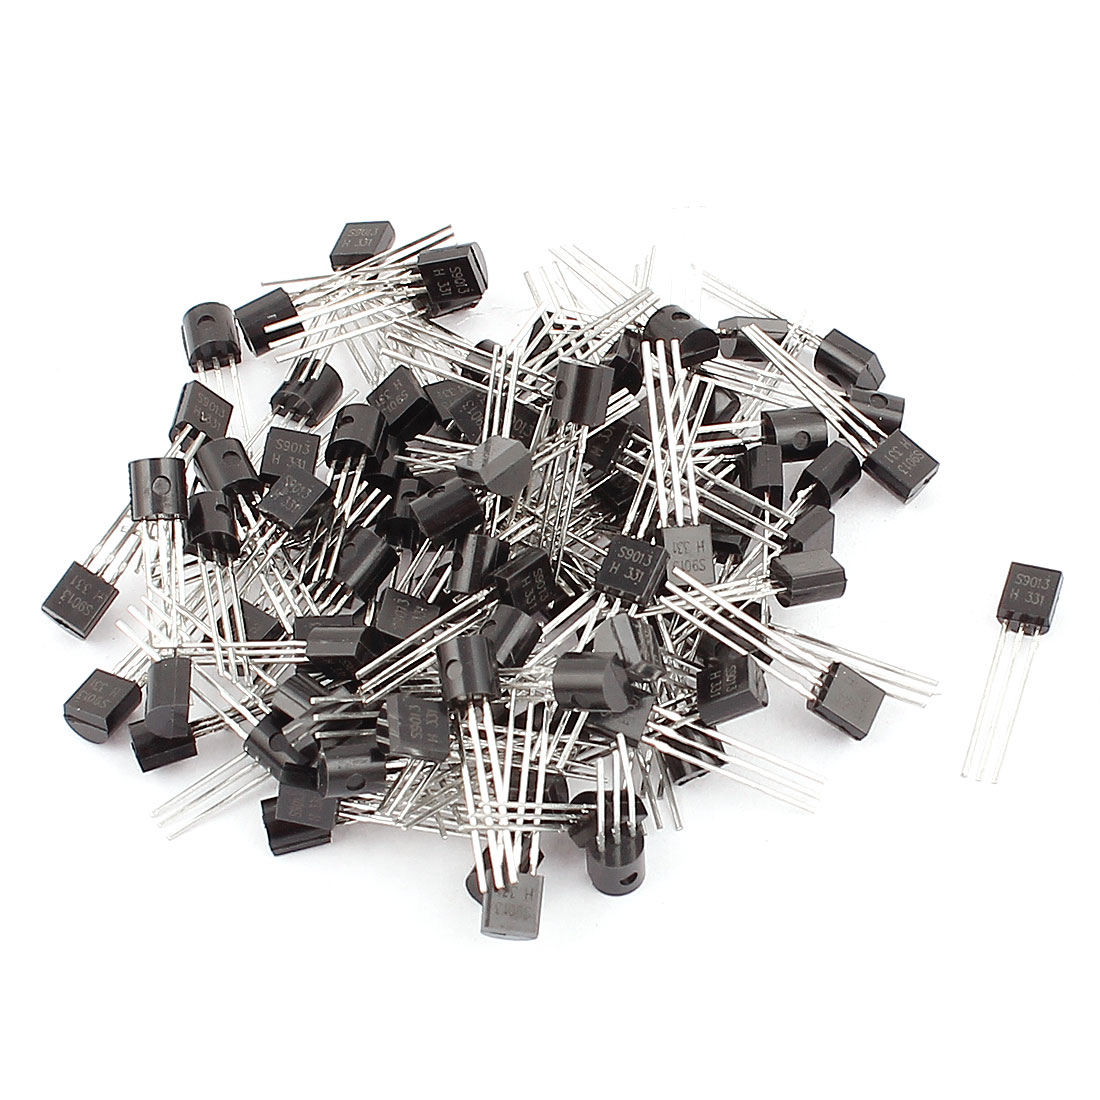 100 Pcs S9013 TO-92 NPN Bipolar Low Power Junction Transistors 40V 0.5A